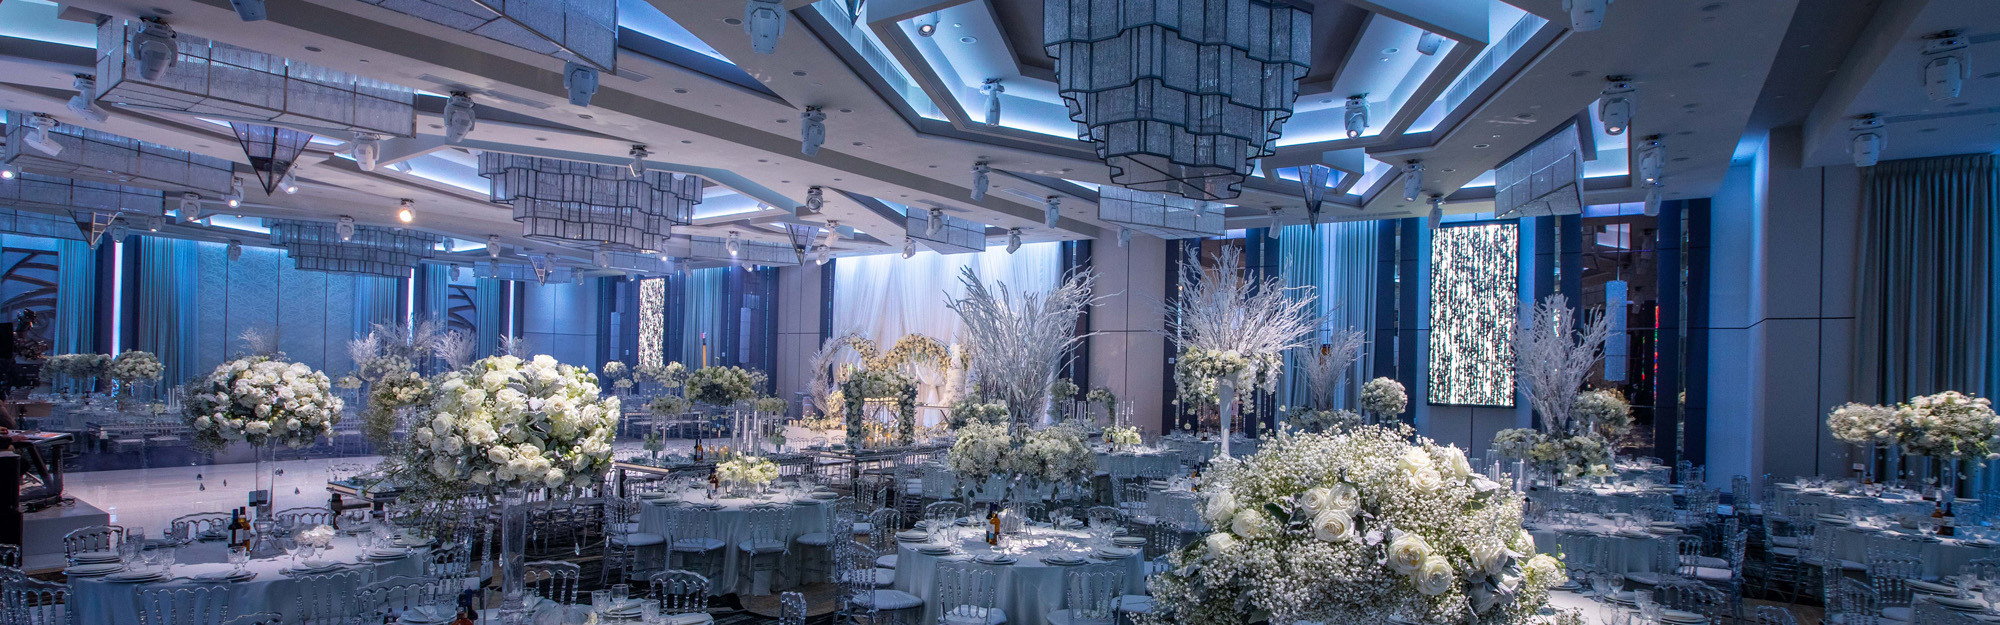 Panoramic view of Wedding Venue in Glendale